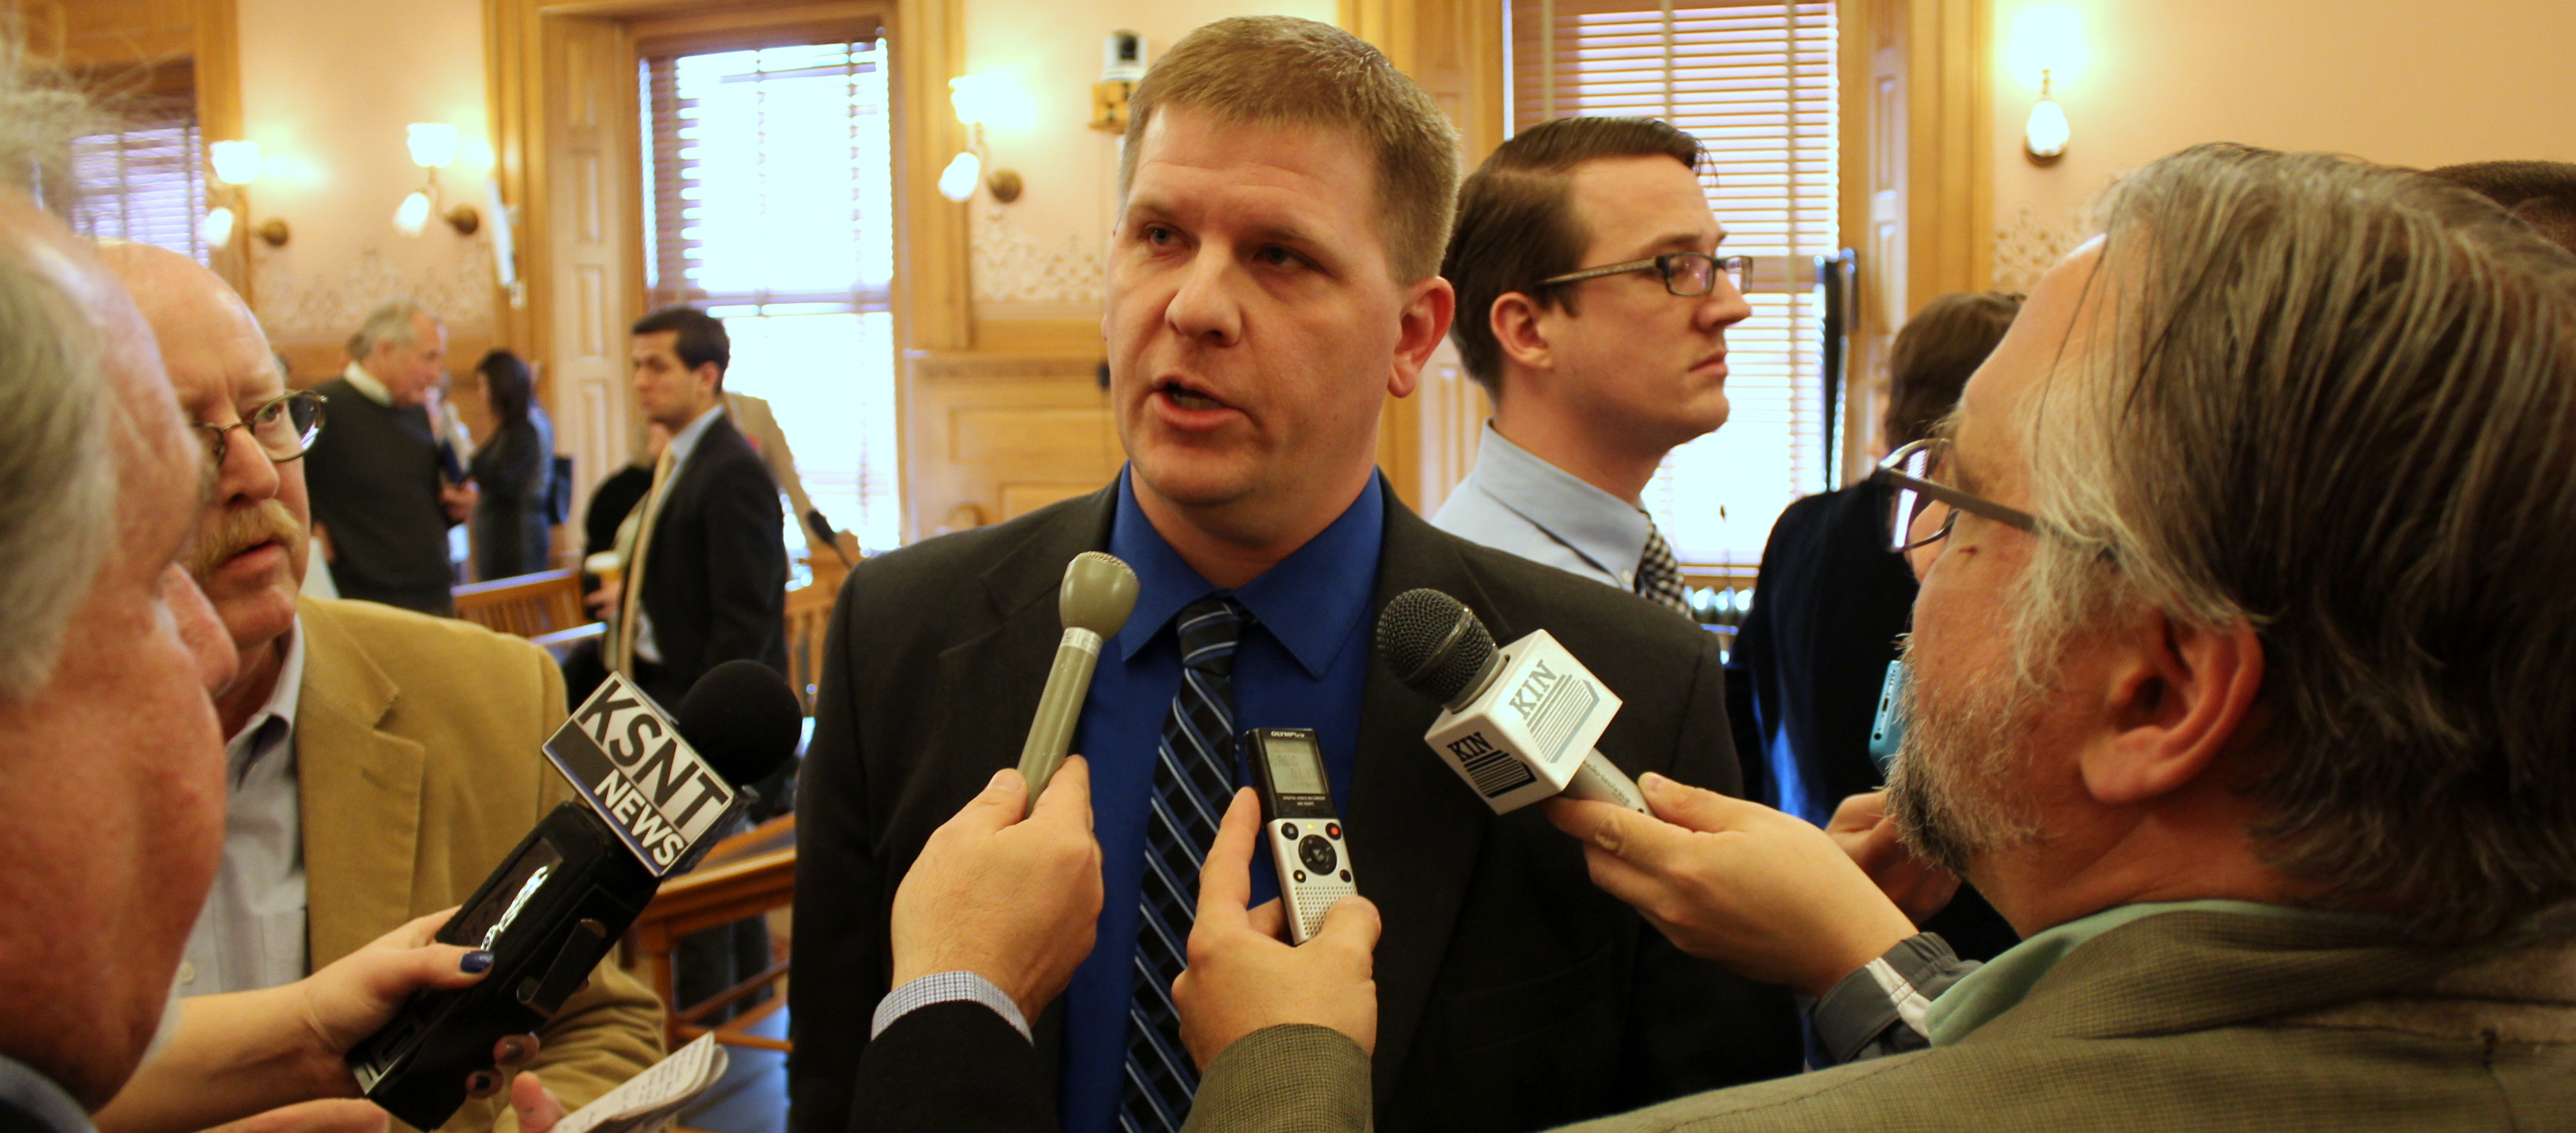 Budget Director Shawn Sullivan speaking to reporters at the Statehouse. (Photo by Stephen Koranda)